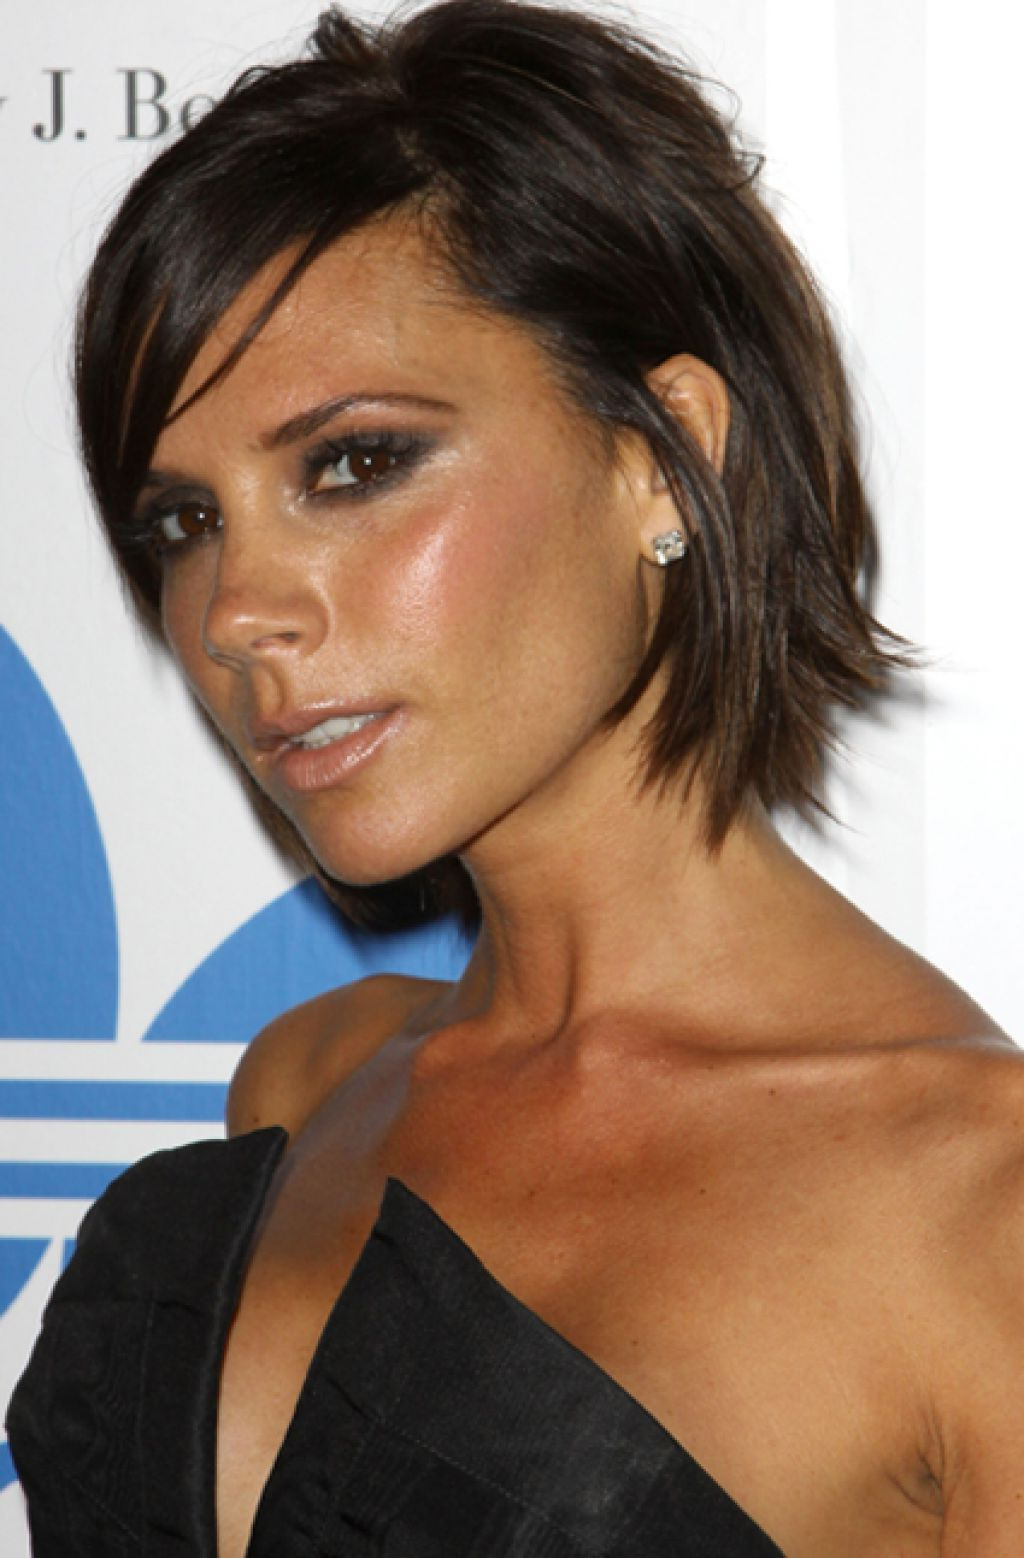 Hair And Makeup Regarding Most Up To Date Victoria Beckham Medium Haircuts (View 9 of 20)